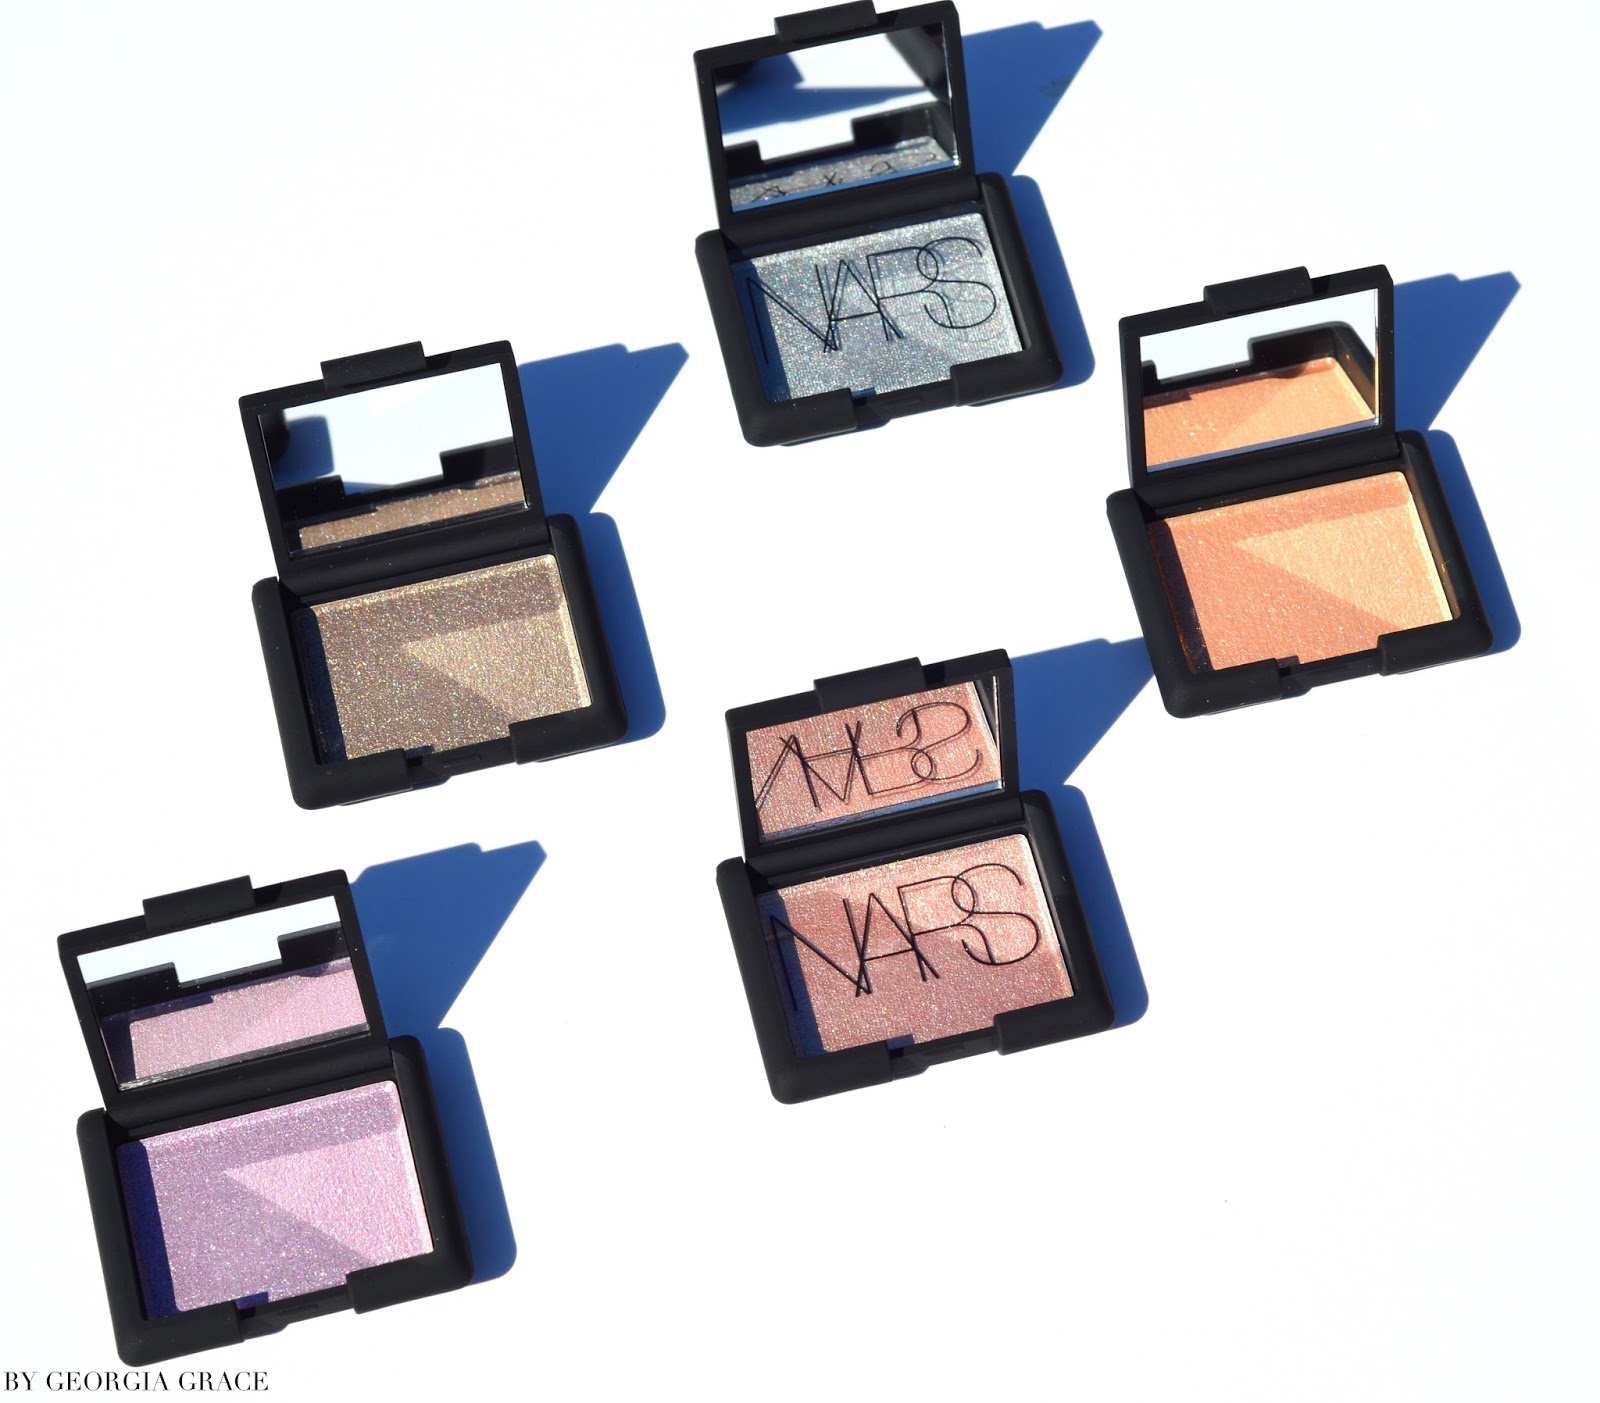 Communication on this topic: NARS Sculpting Multiple Duos Hardwired Eyeshadows for , nars-sculpting-multiple-duos-hardwired-eyeshadows-for/